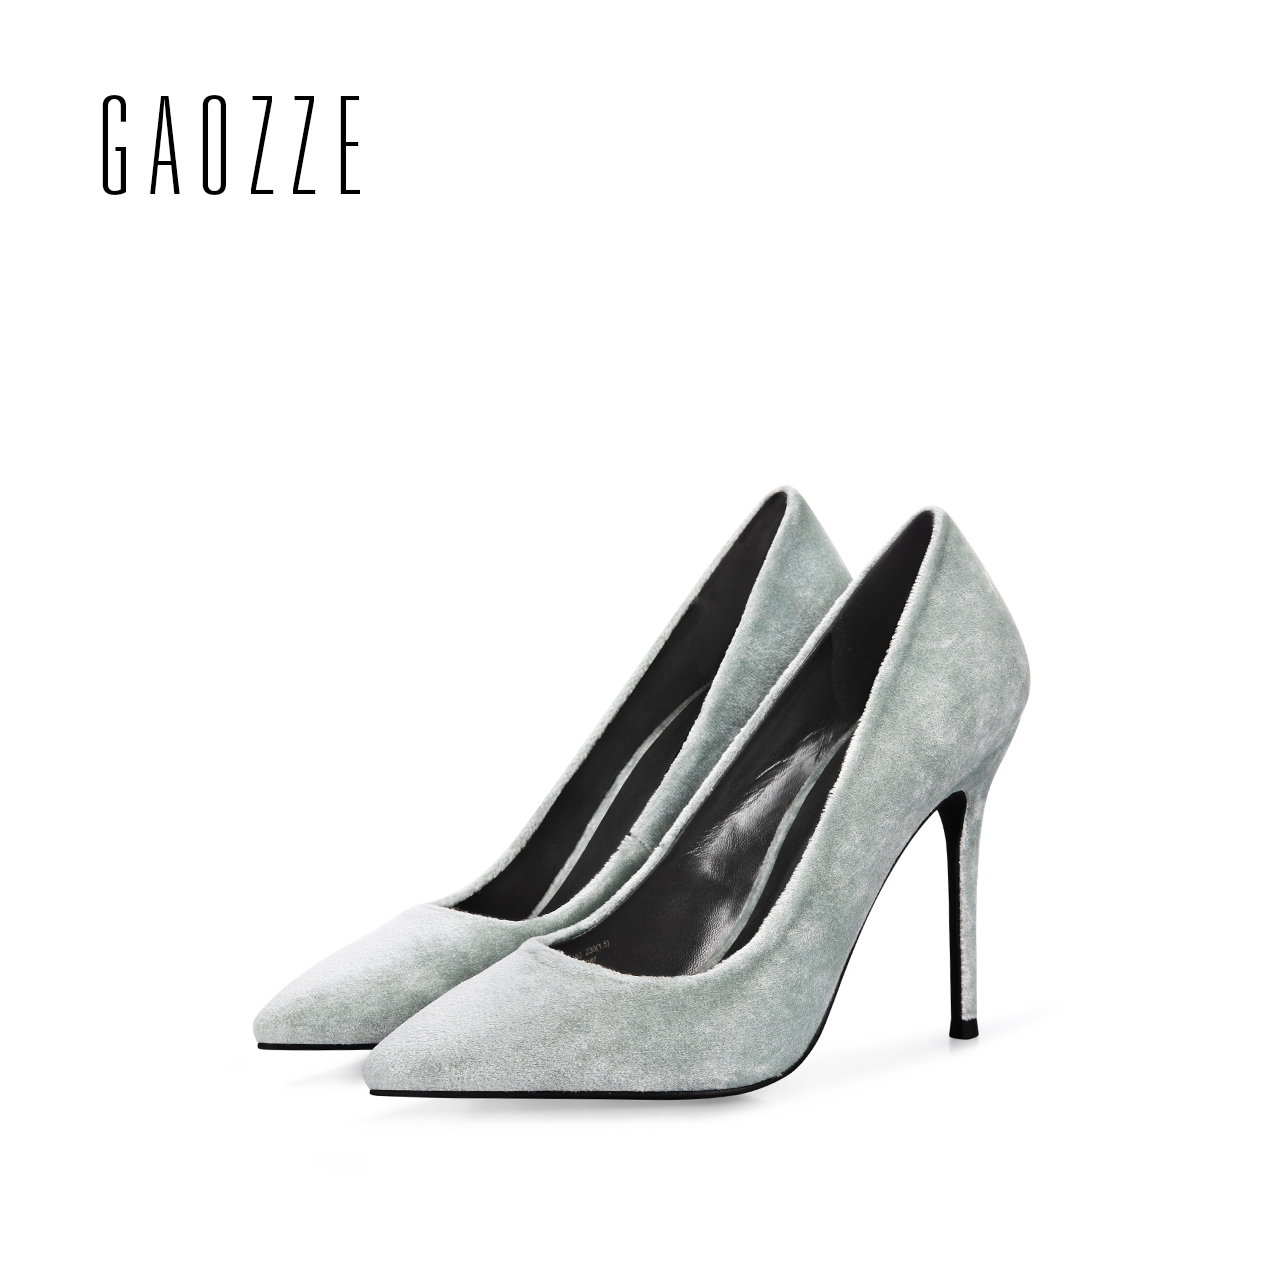 GAOZZE 2017 spring summer velvet women high heels shoes pointed toe shallow mouth shoes 10CM high heels wedding shoes female 2017 spring and summer new women s shoes female pointed shallow mouth slope with high heel shoe side empty leather woman s shoes